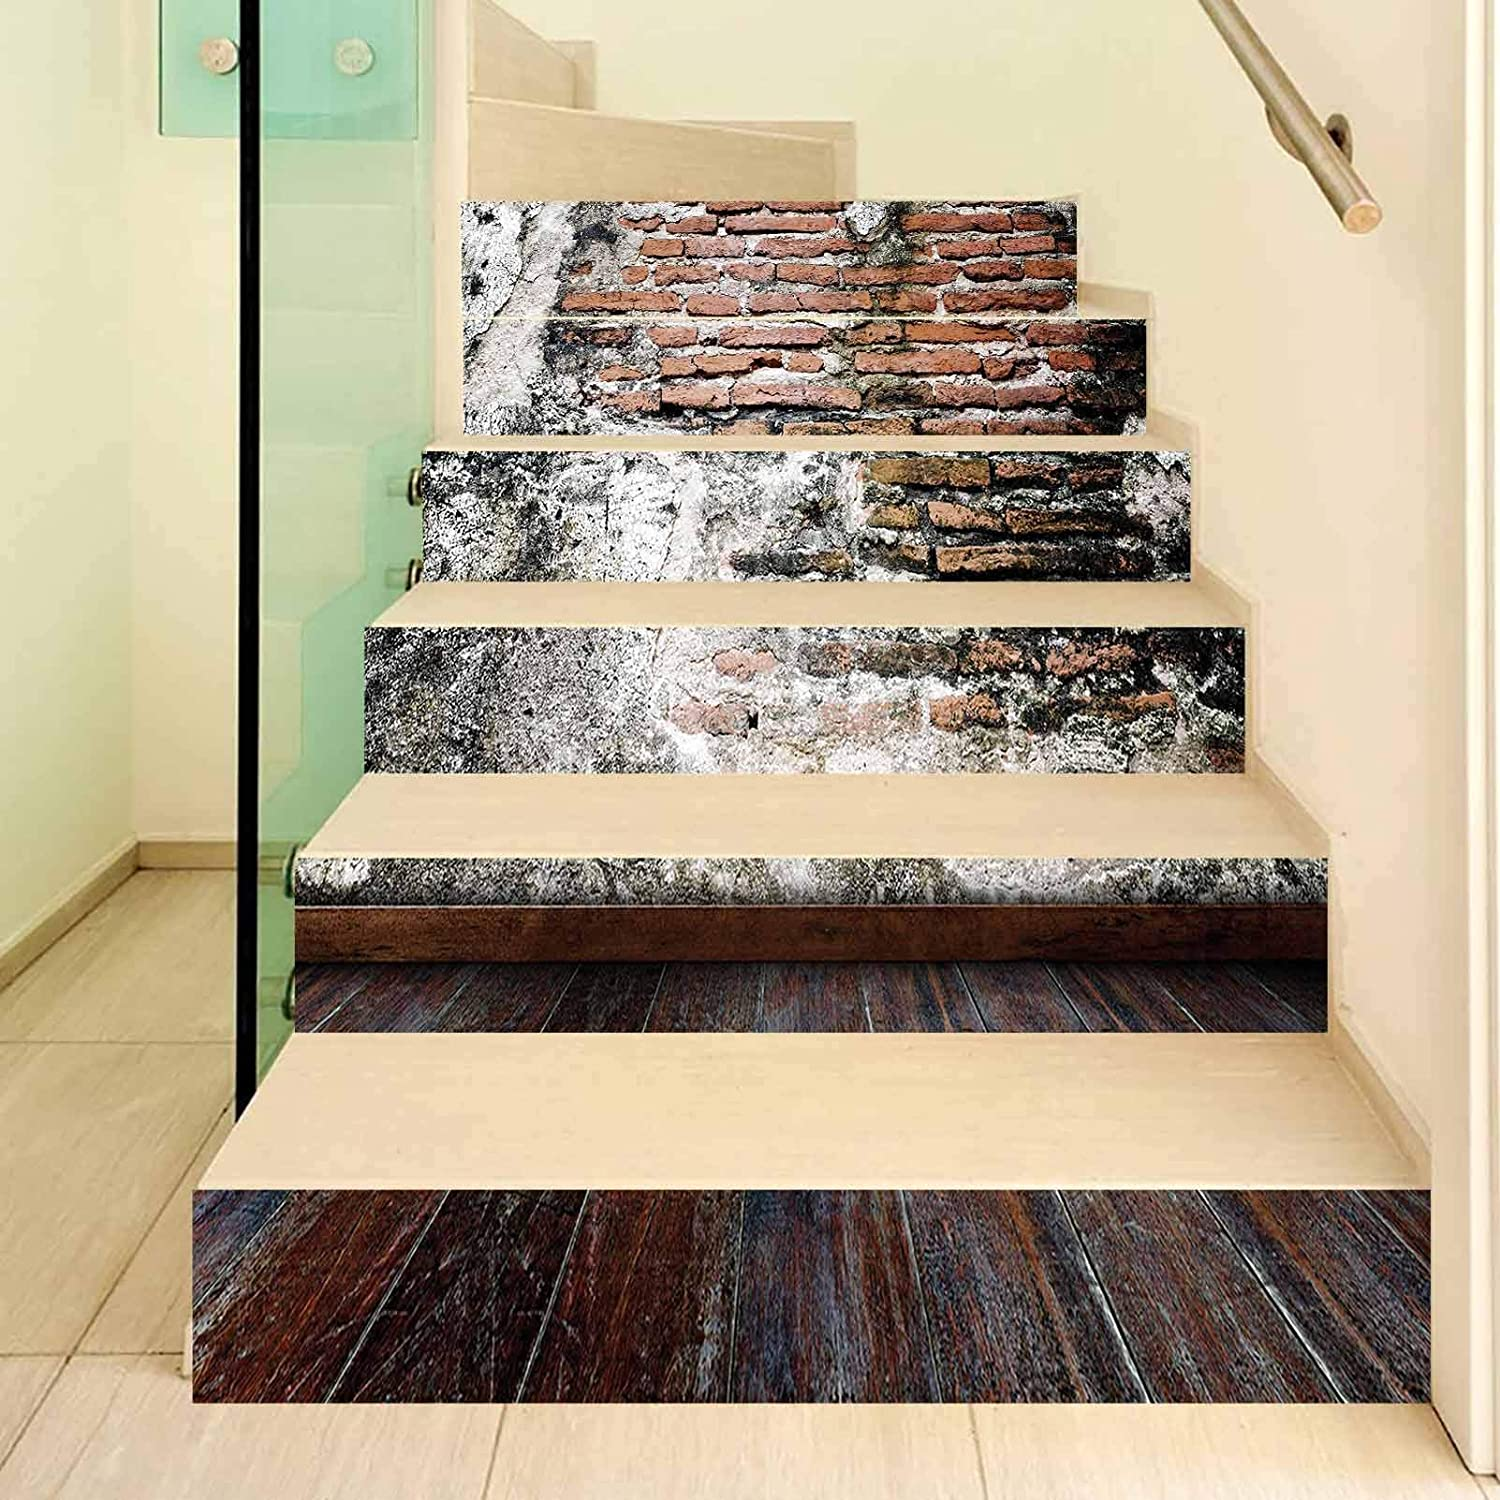 Rustic 3D Stair Stickers Decals-6Pcs/Set,Worn Looking Wall Photograph with Wooden Floors Ancient Building Structure Decorative Stair Risers Stickers Removable Staircase Decals Mural Wallpaper for Home